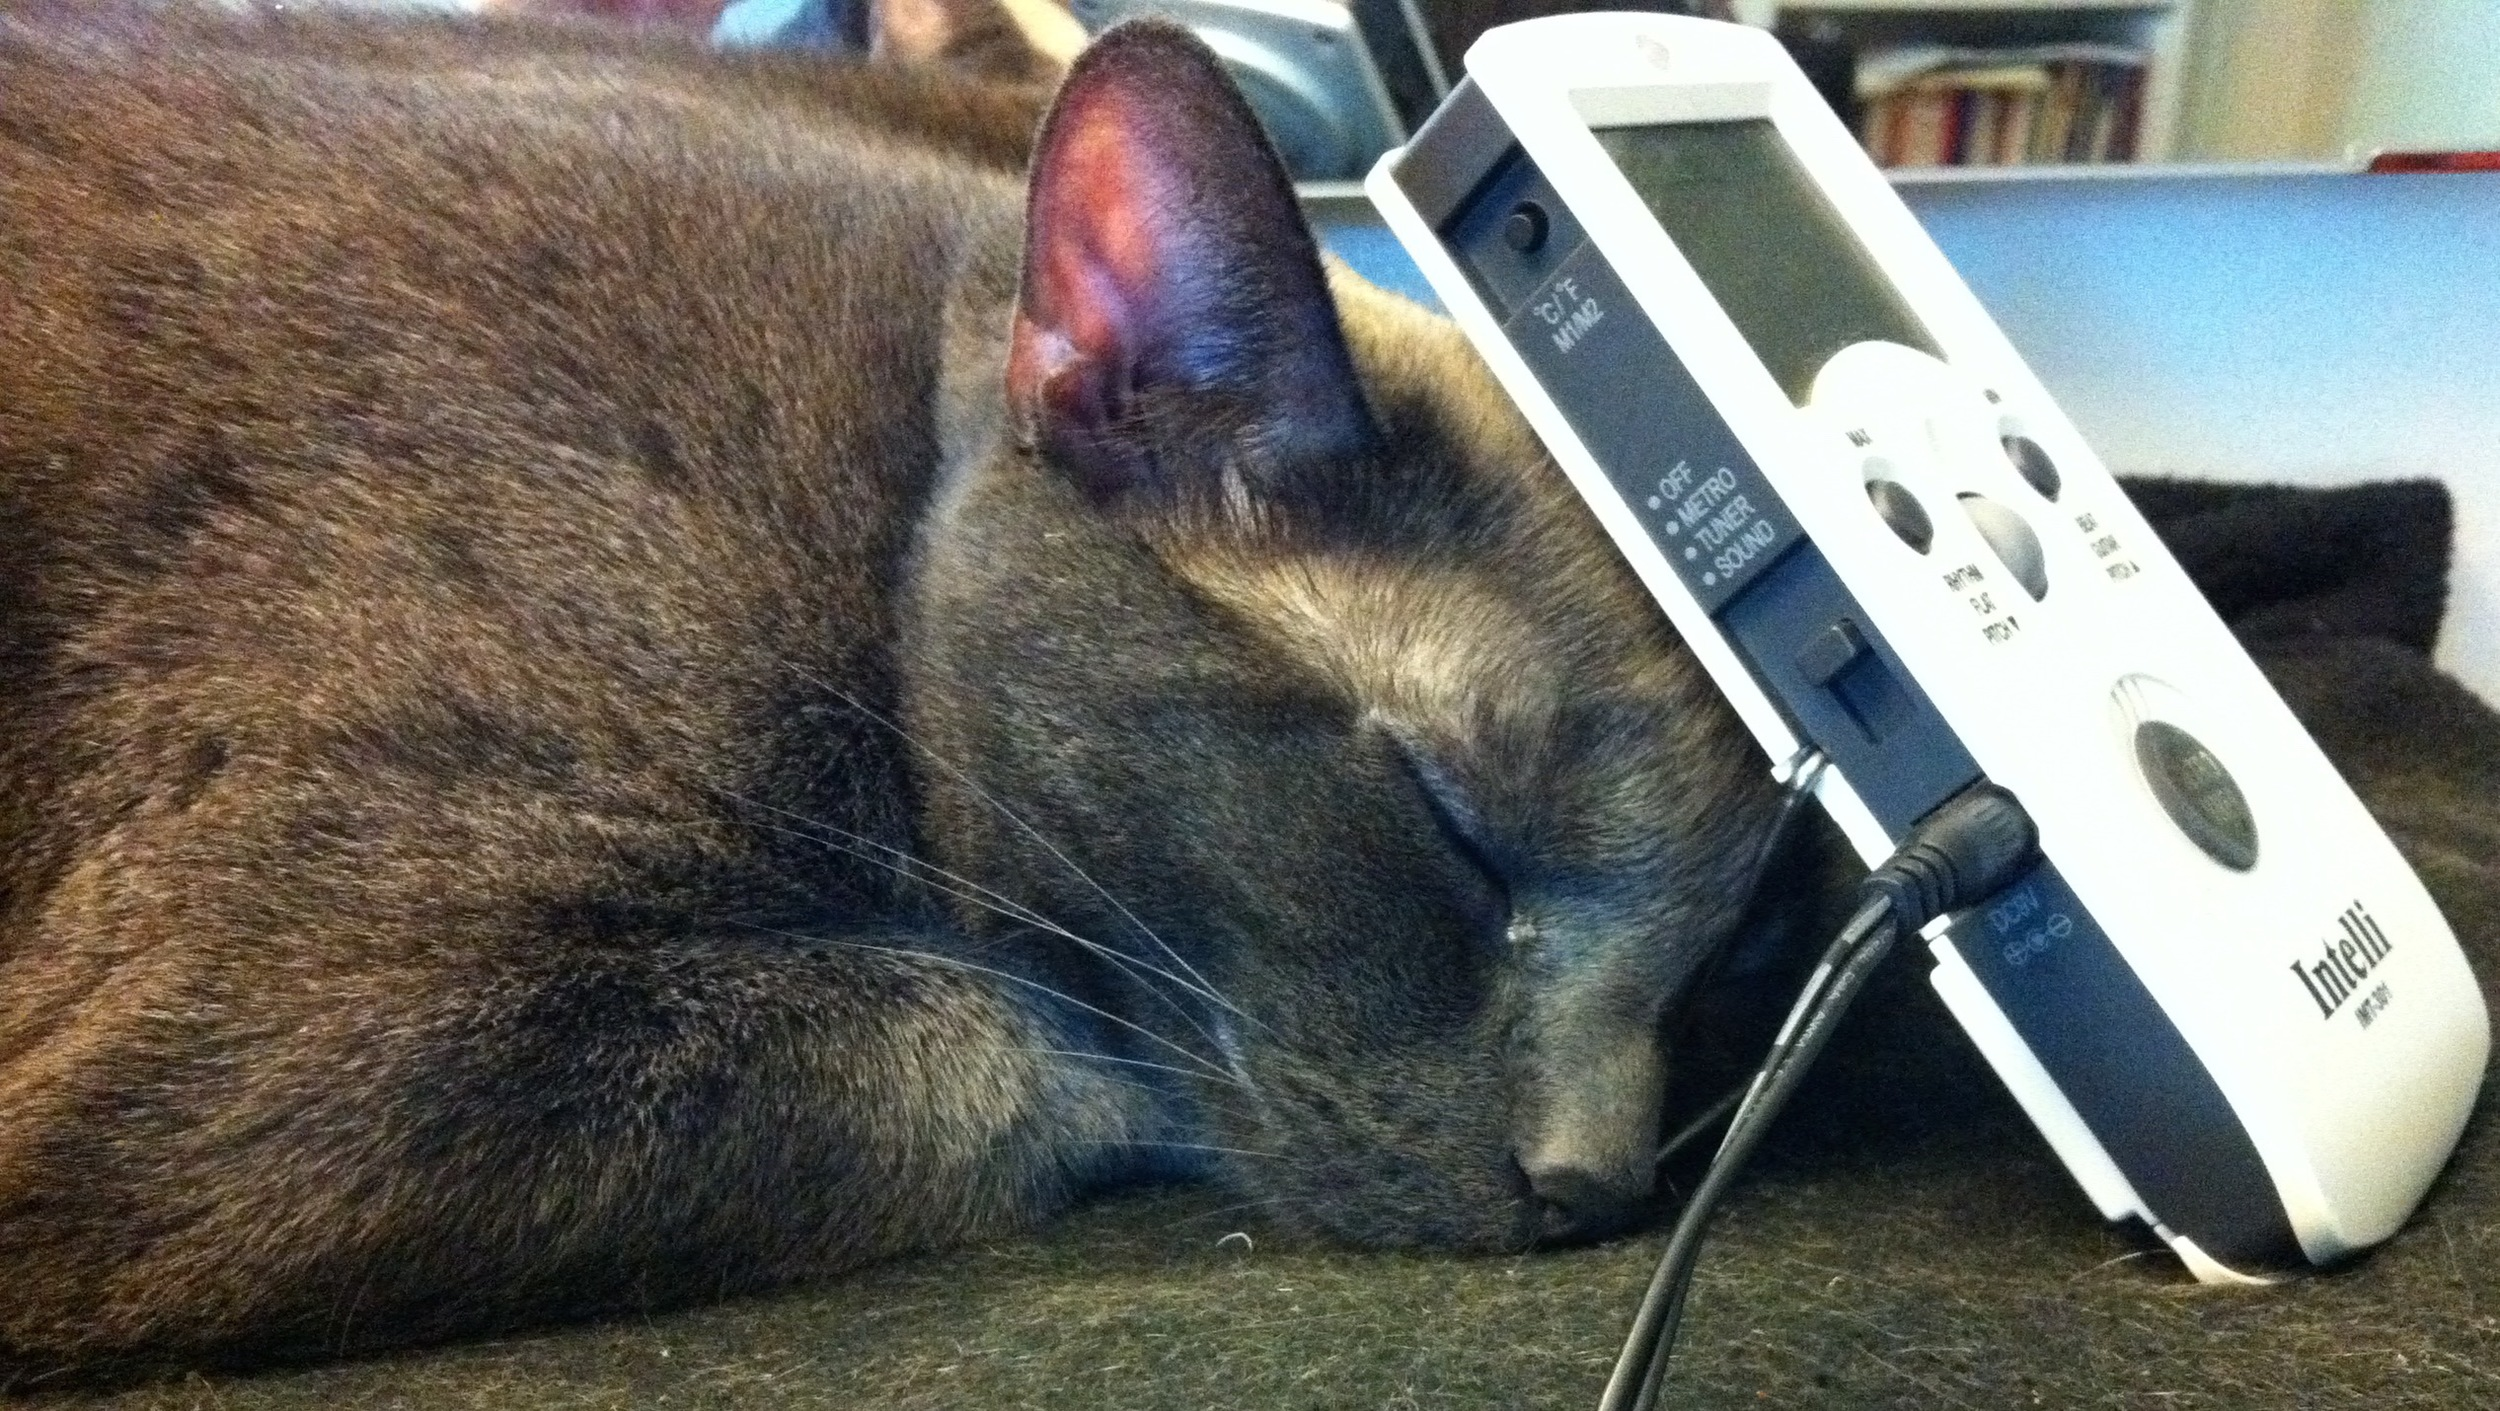 Odin demonstrates the use of the metronome as a sleep aid.